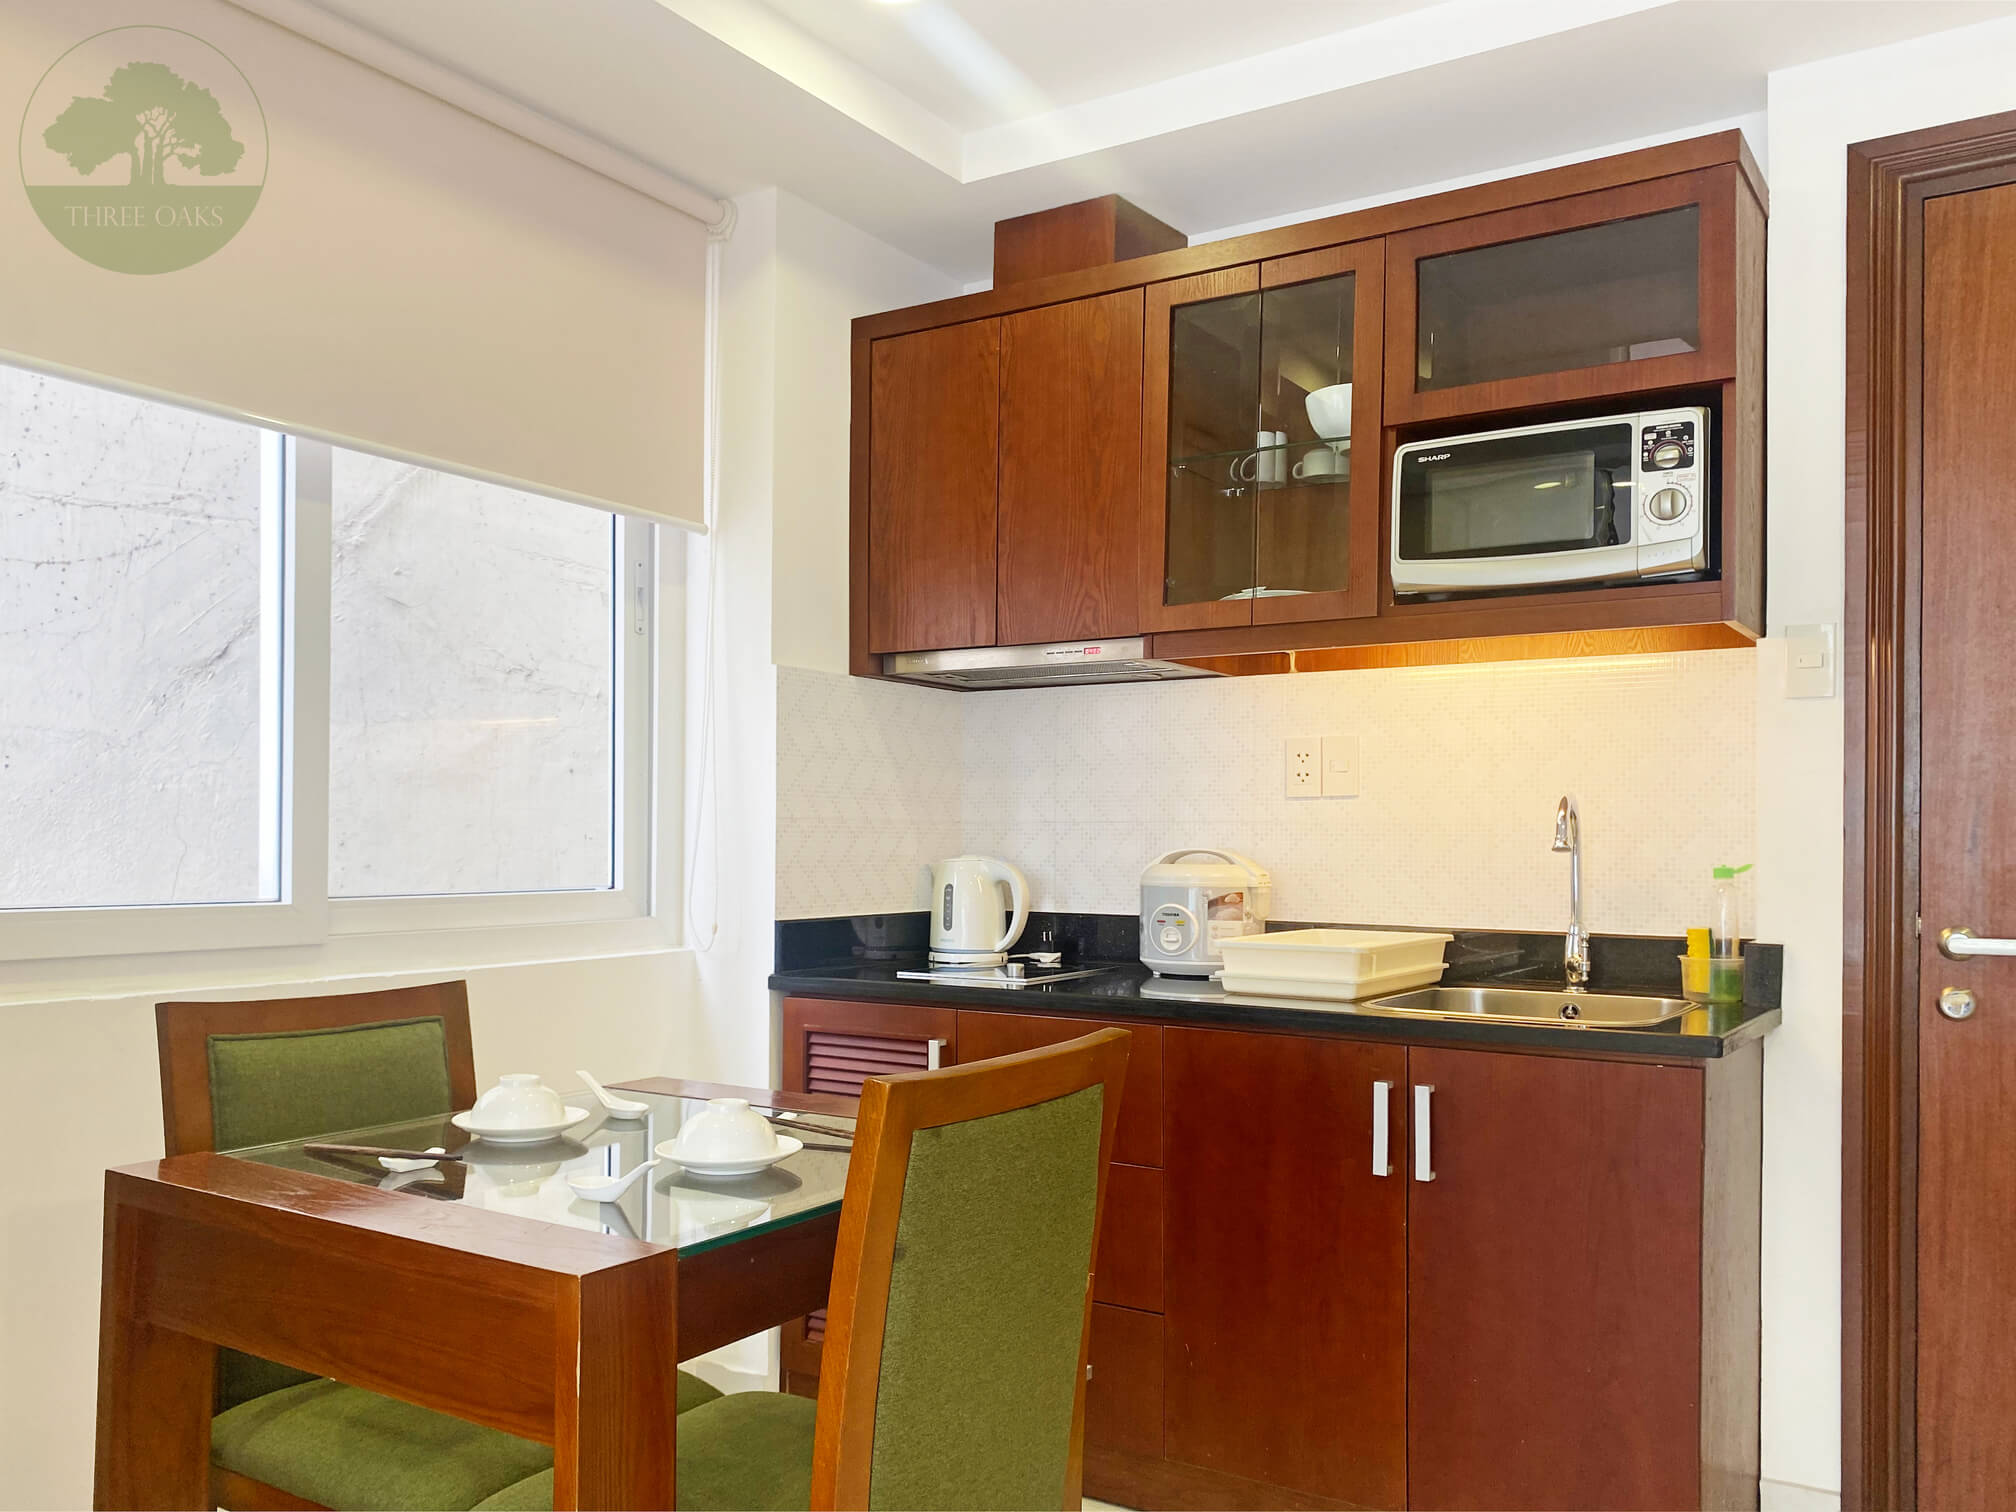 Housing-Apartments-for-rent-in-Saigon-tybe-a-1a-16